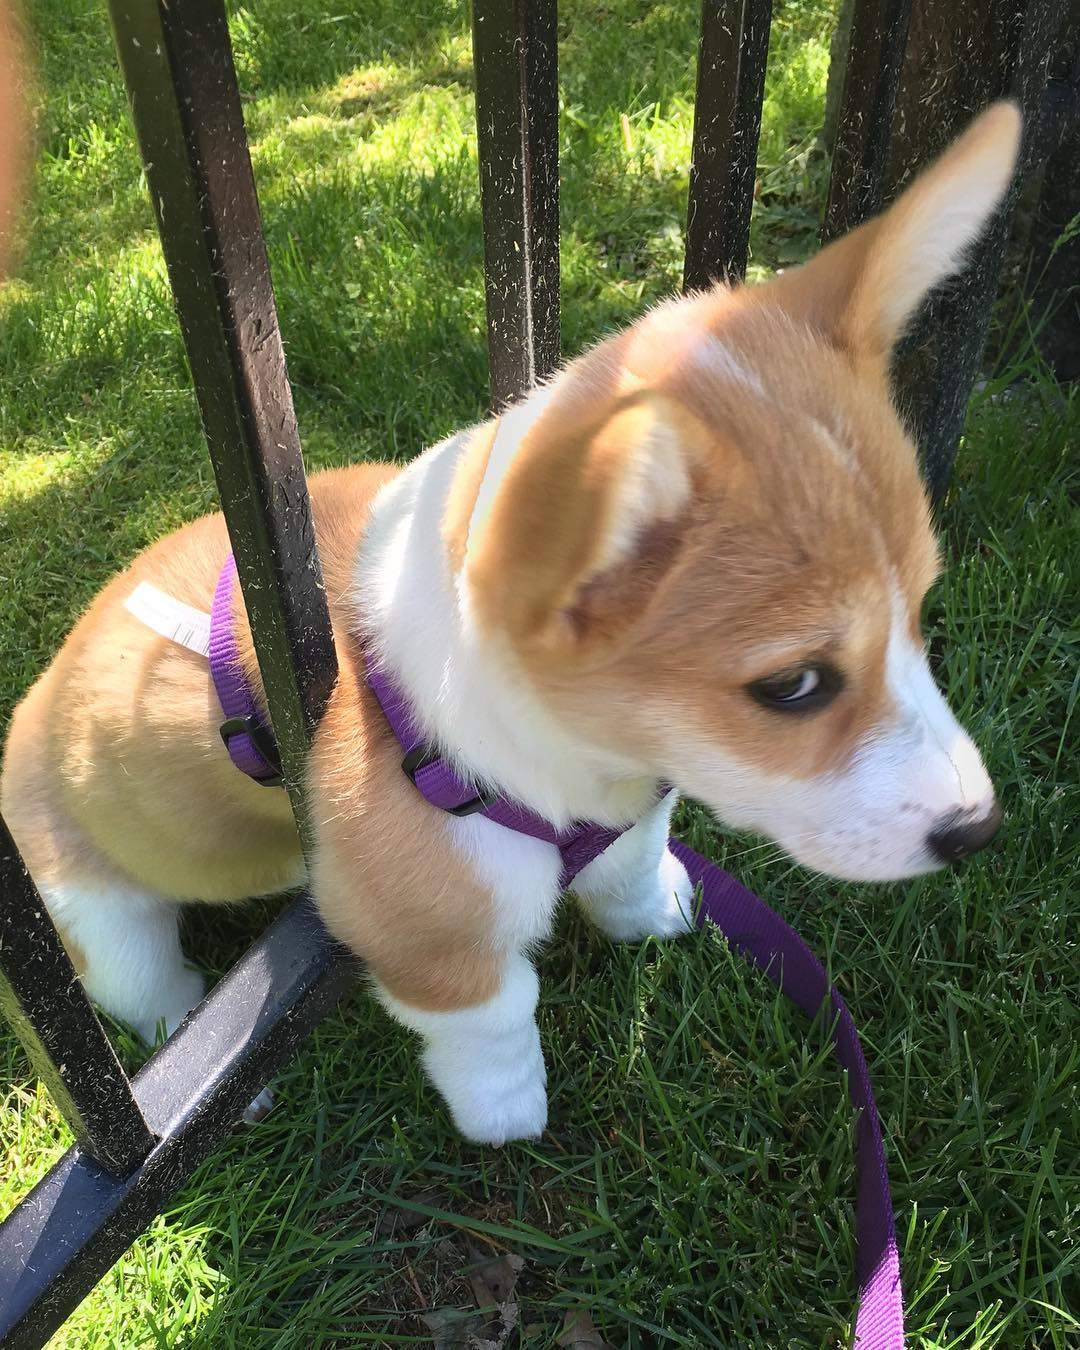 Cute dogs - part 190, cute dog images, best funny dog pictures